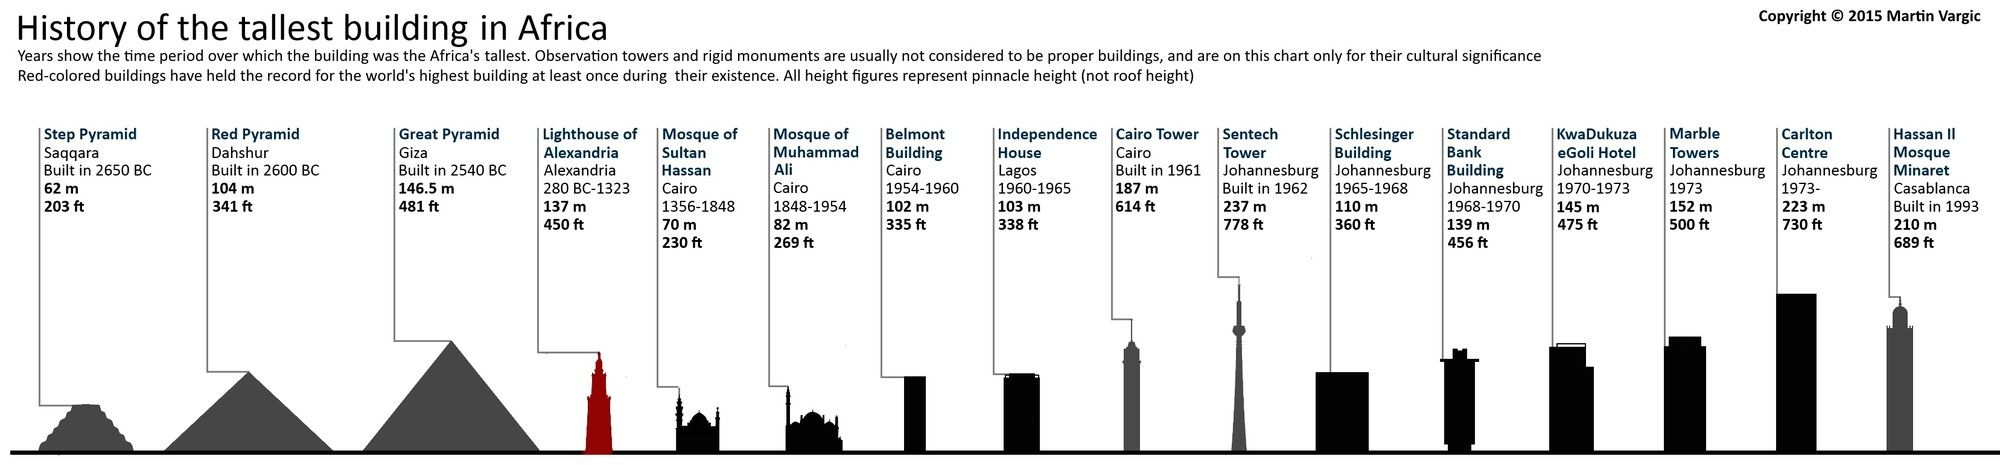 Gallery of The World's Tallest Buildings Throughout History - 6